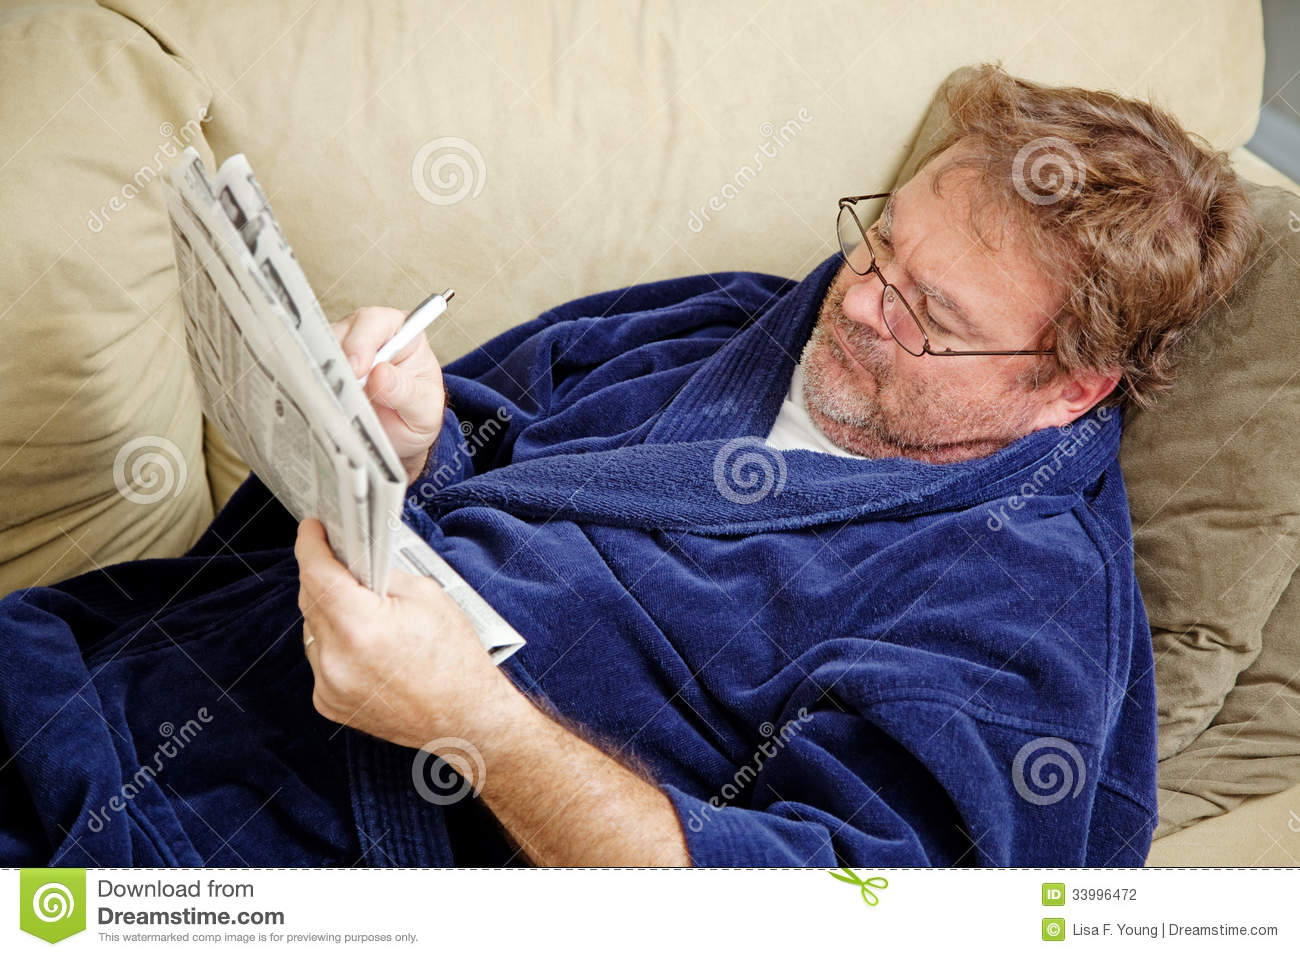 Unemployed Checking Classified Ads for Work